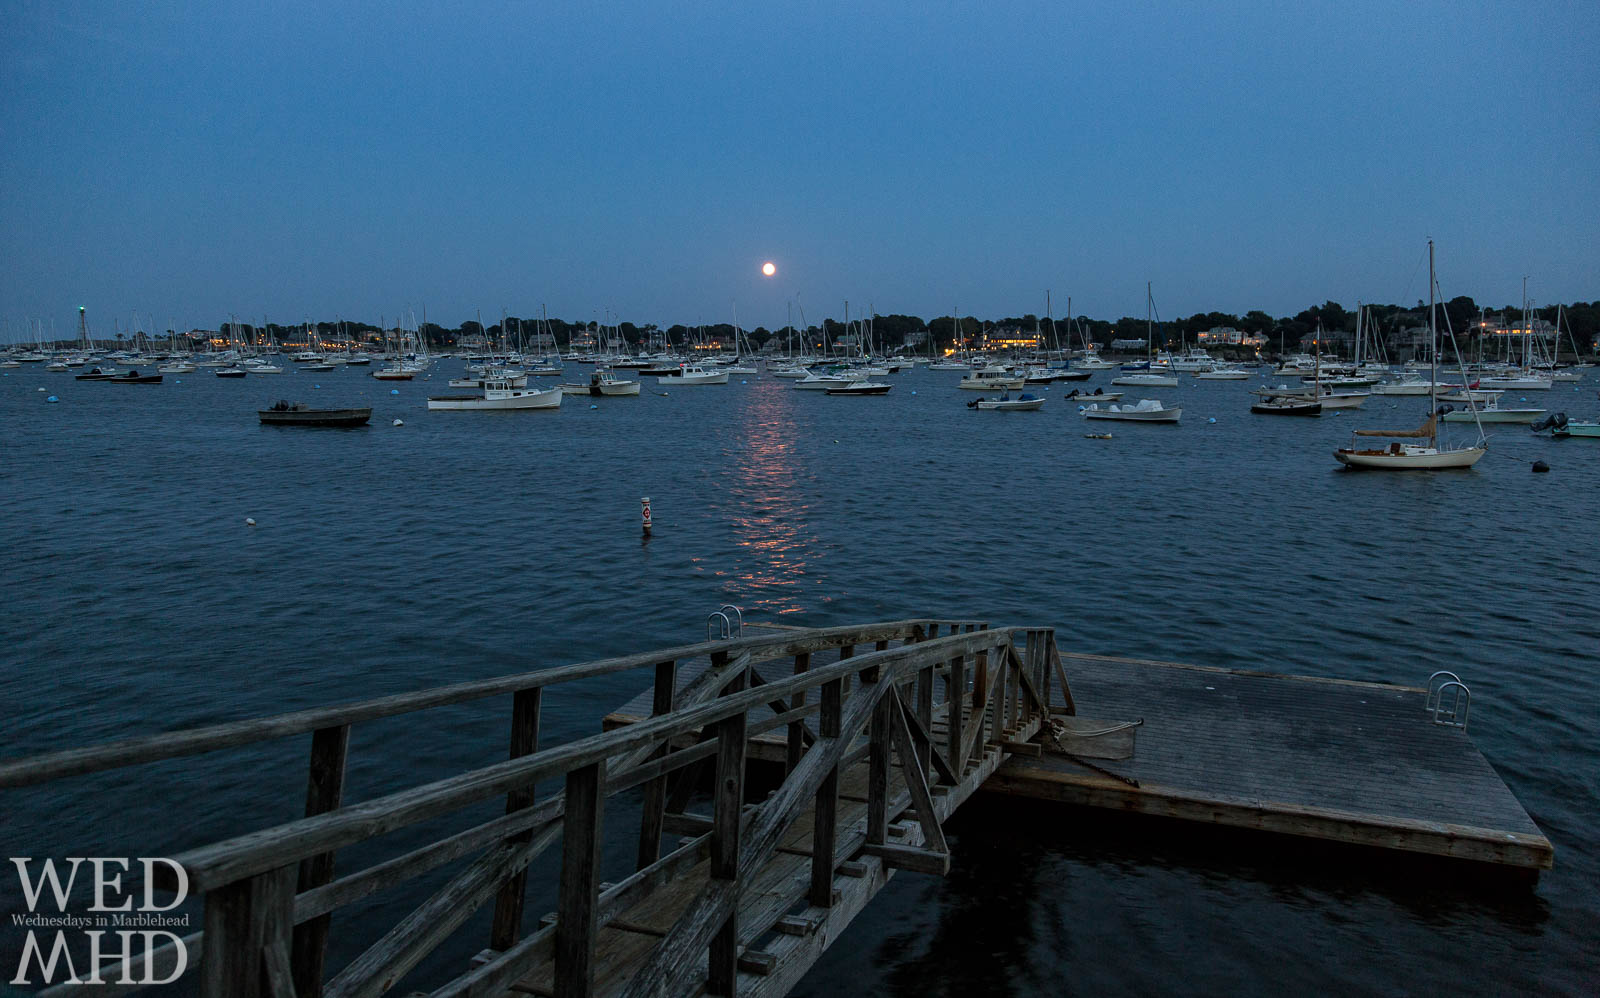 The Crocker Park float and a harbor full of boats are seen on an early September evening as the full corn moon rises